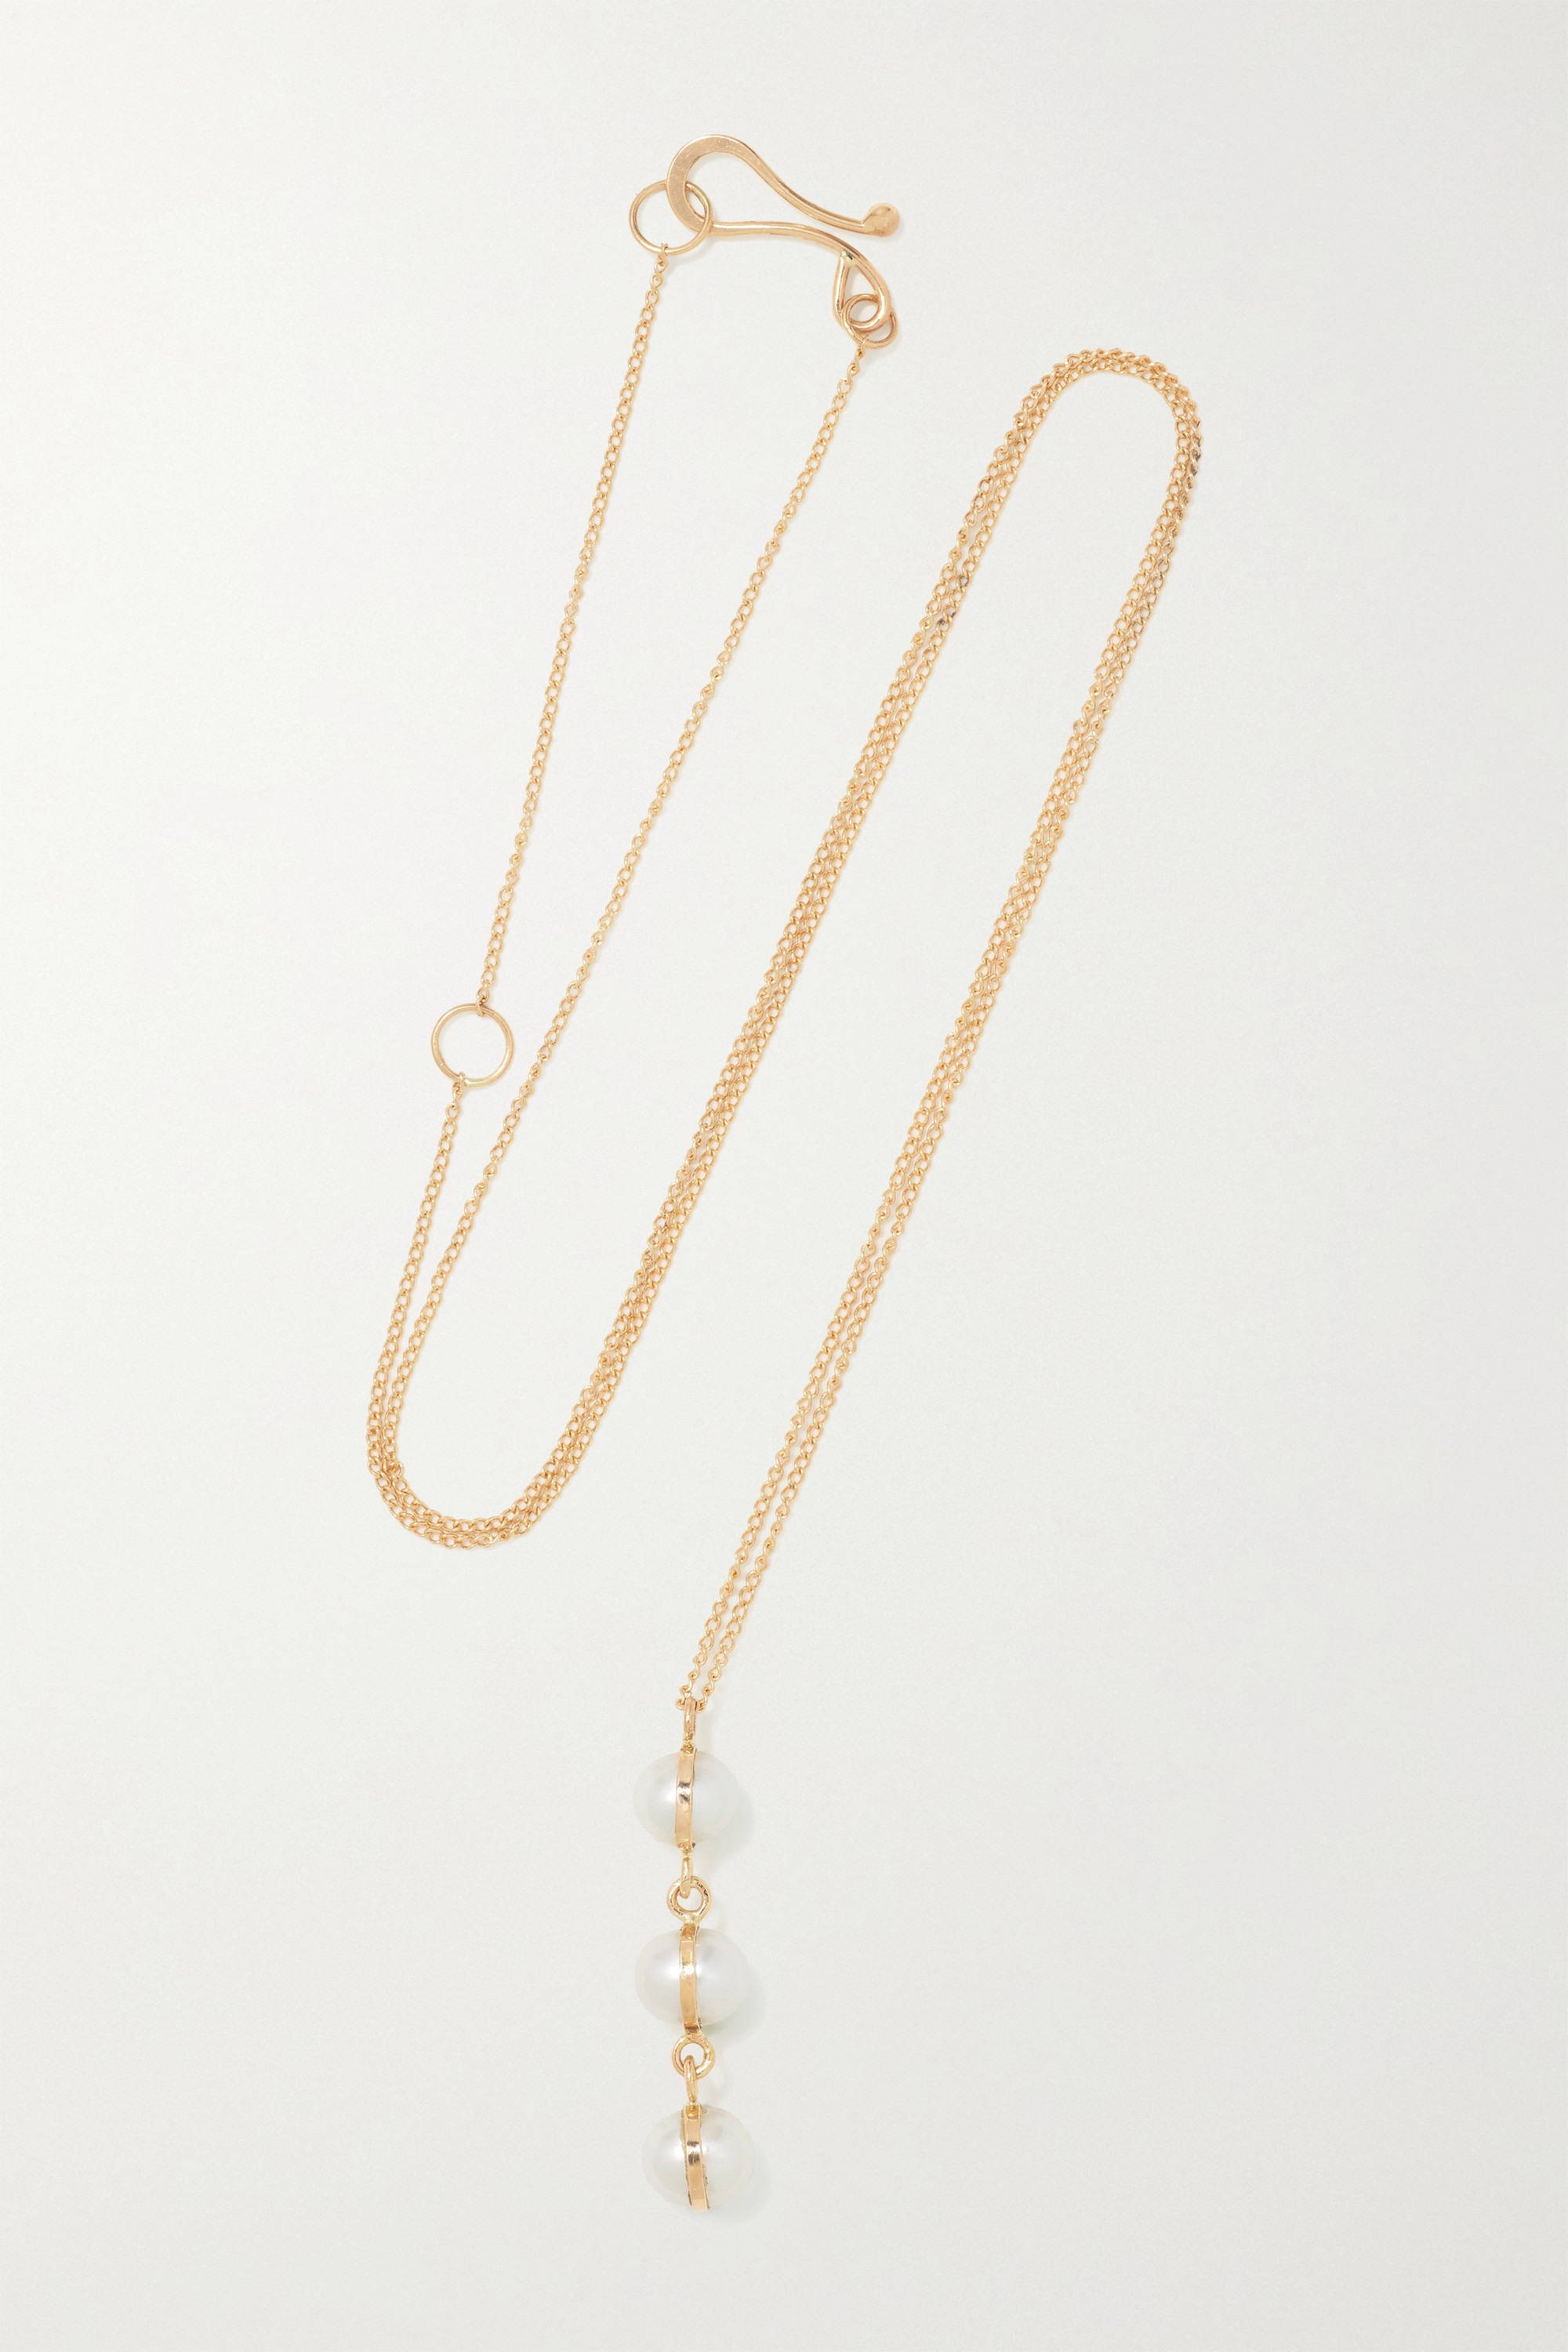 MELISSA JOY MANNING 14-karat recycled gold pearl necklace